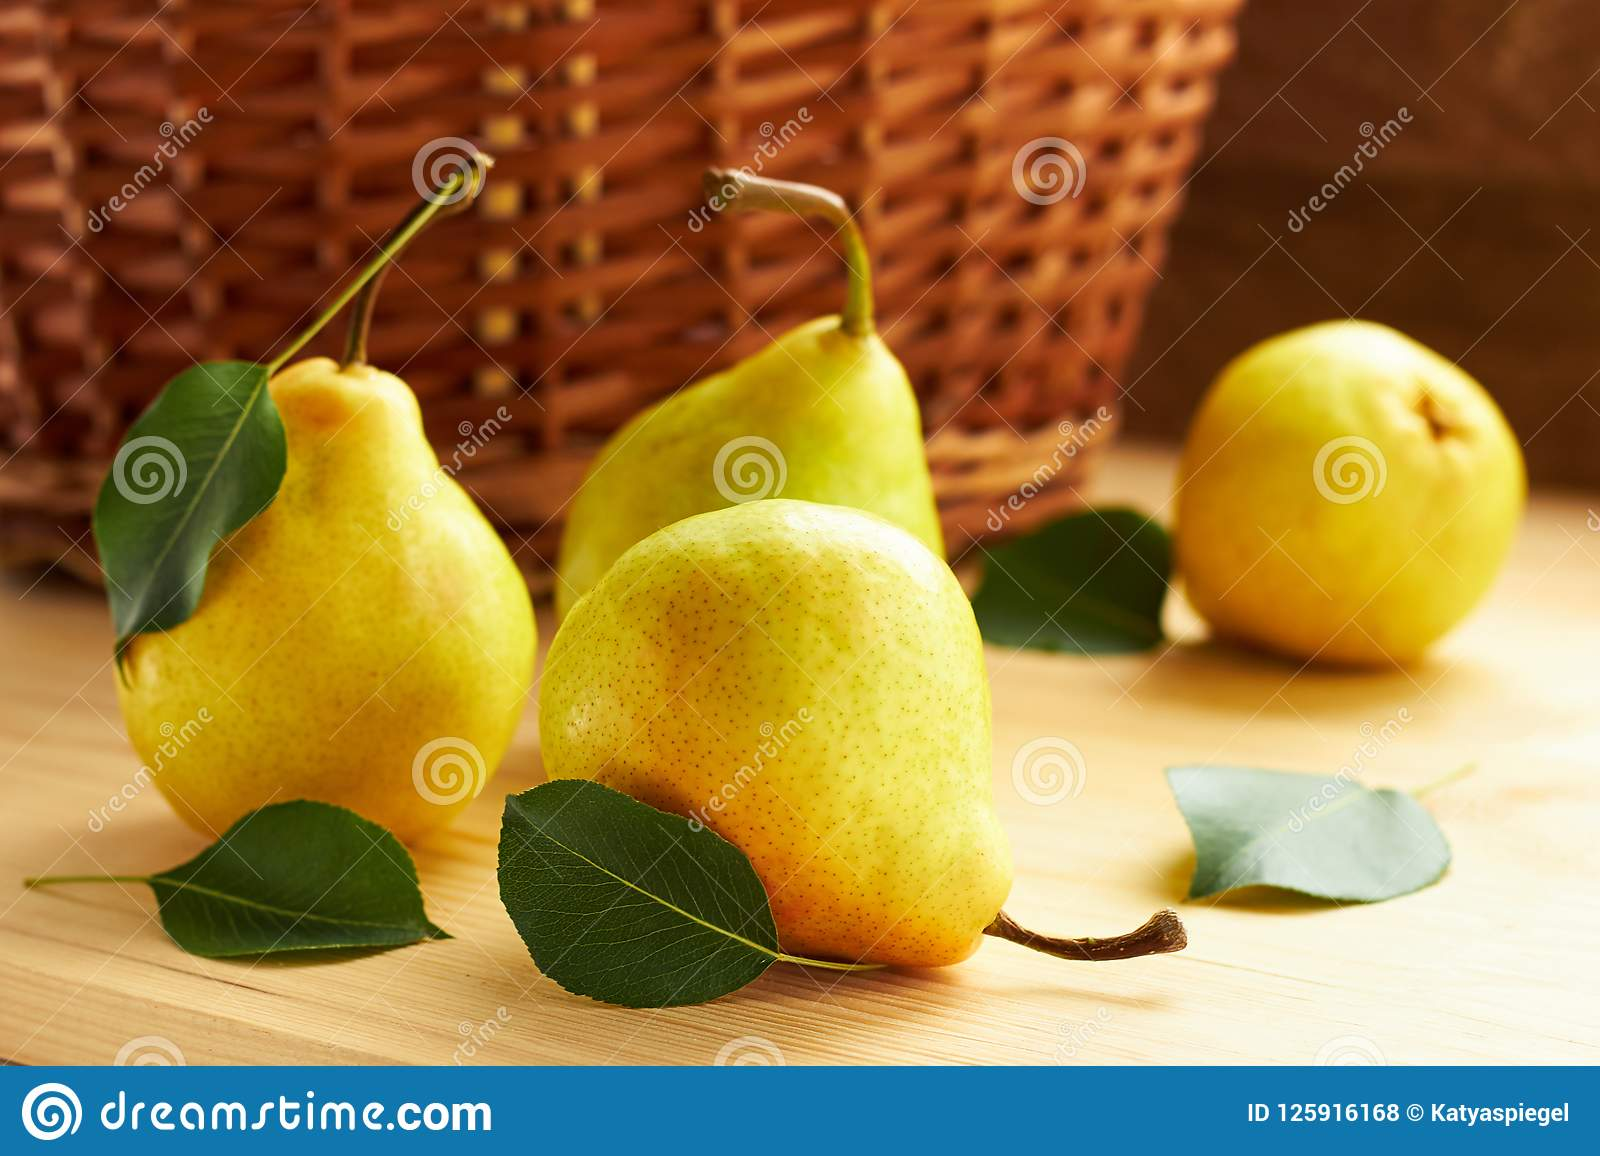 Fresh pears with green leaves in front of wattled basket on wooden background